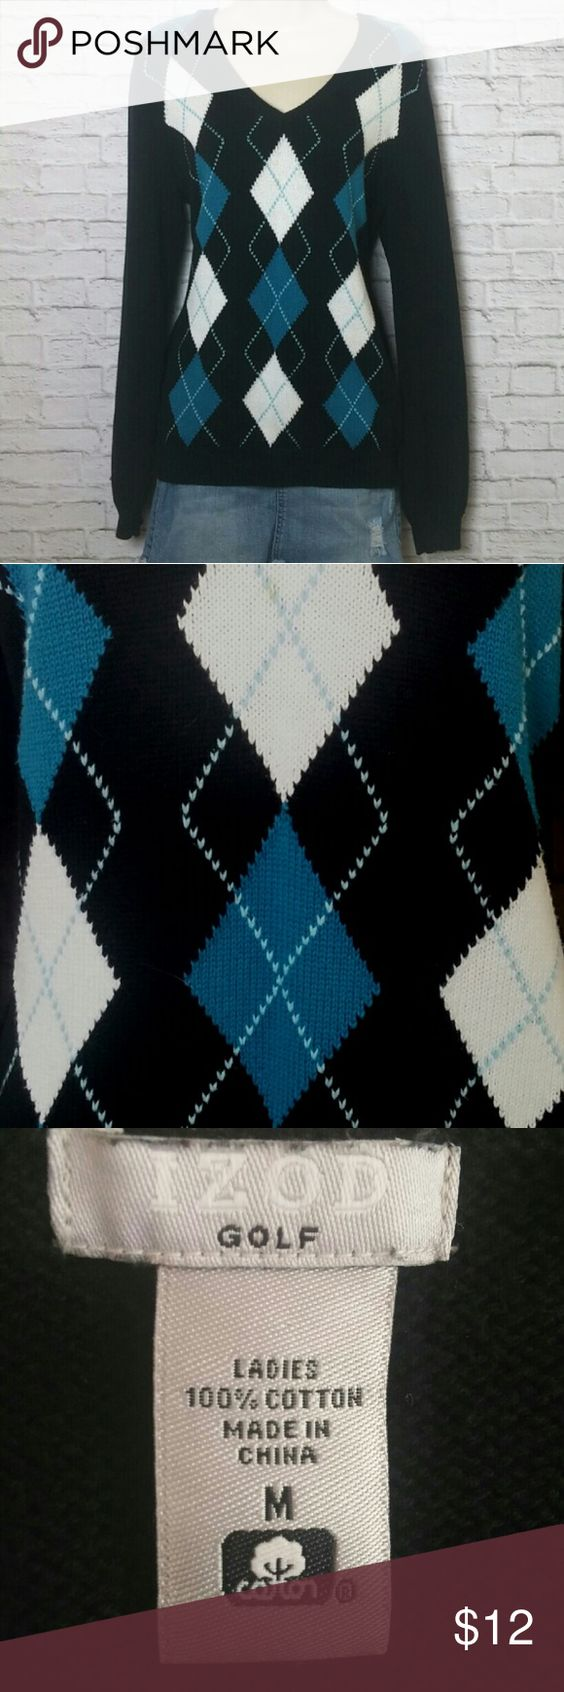 """Izod Golf Argyle Sweater Adorable and very comfortable blue,black and white argyle sweater. Cute paired with jeans and undershirt like pic 3 ( not actual sweater). In like new condition. 100% cotton. Size Medium Bust 18""""- Length 26""""-  Sleeve 26"""" Izod Sweaters V-Necks"""